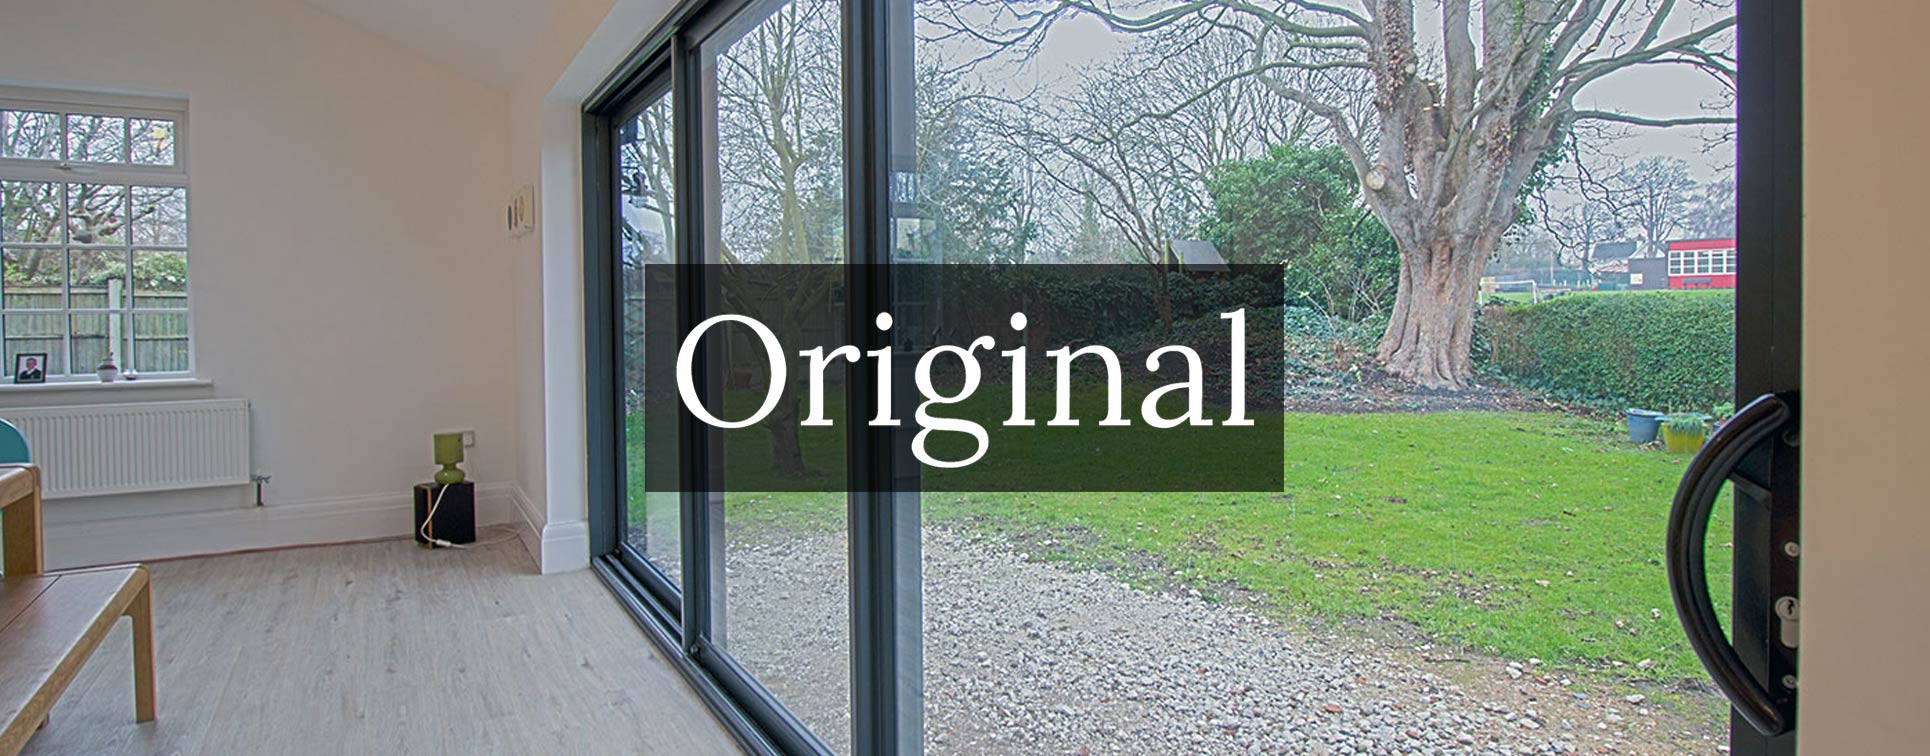 Original sliding doors